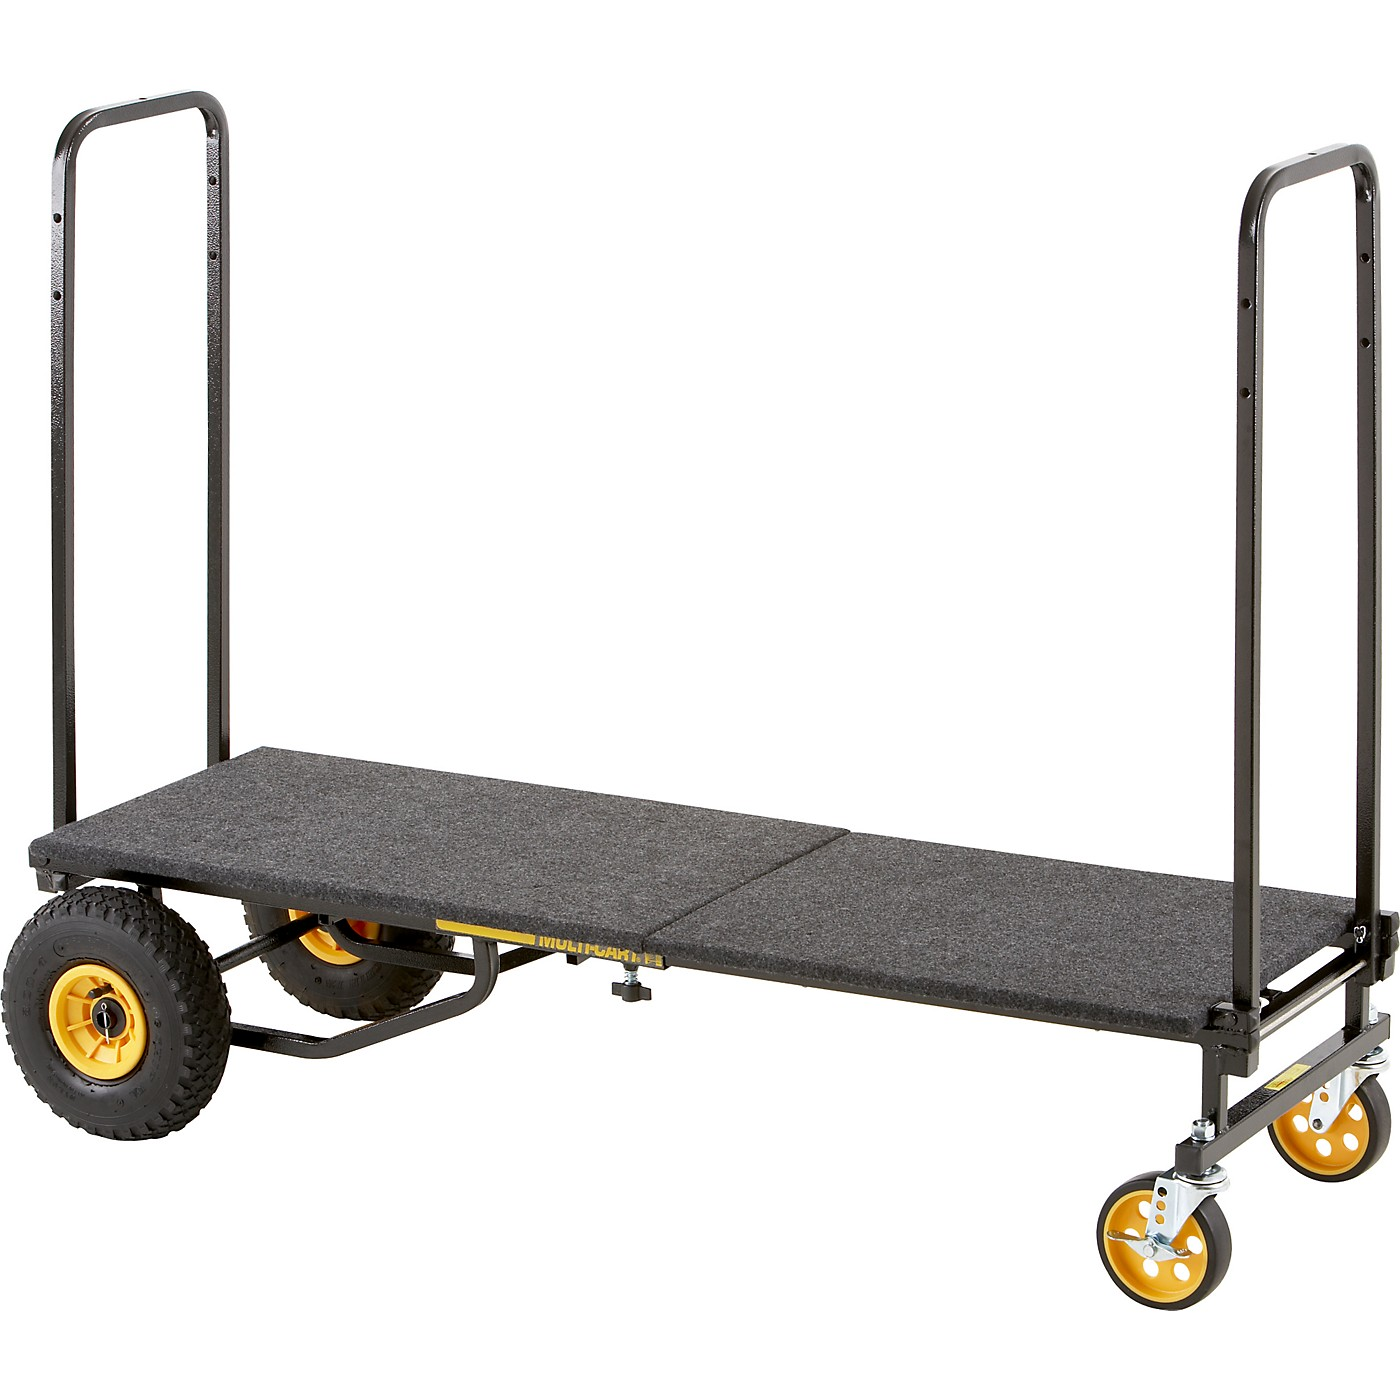 Rock N Roller Multi-Cart R10RT Max with Deck thumbnail